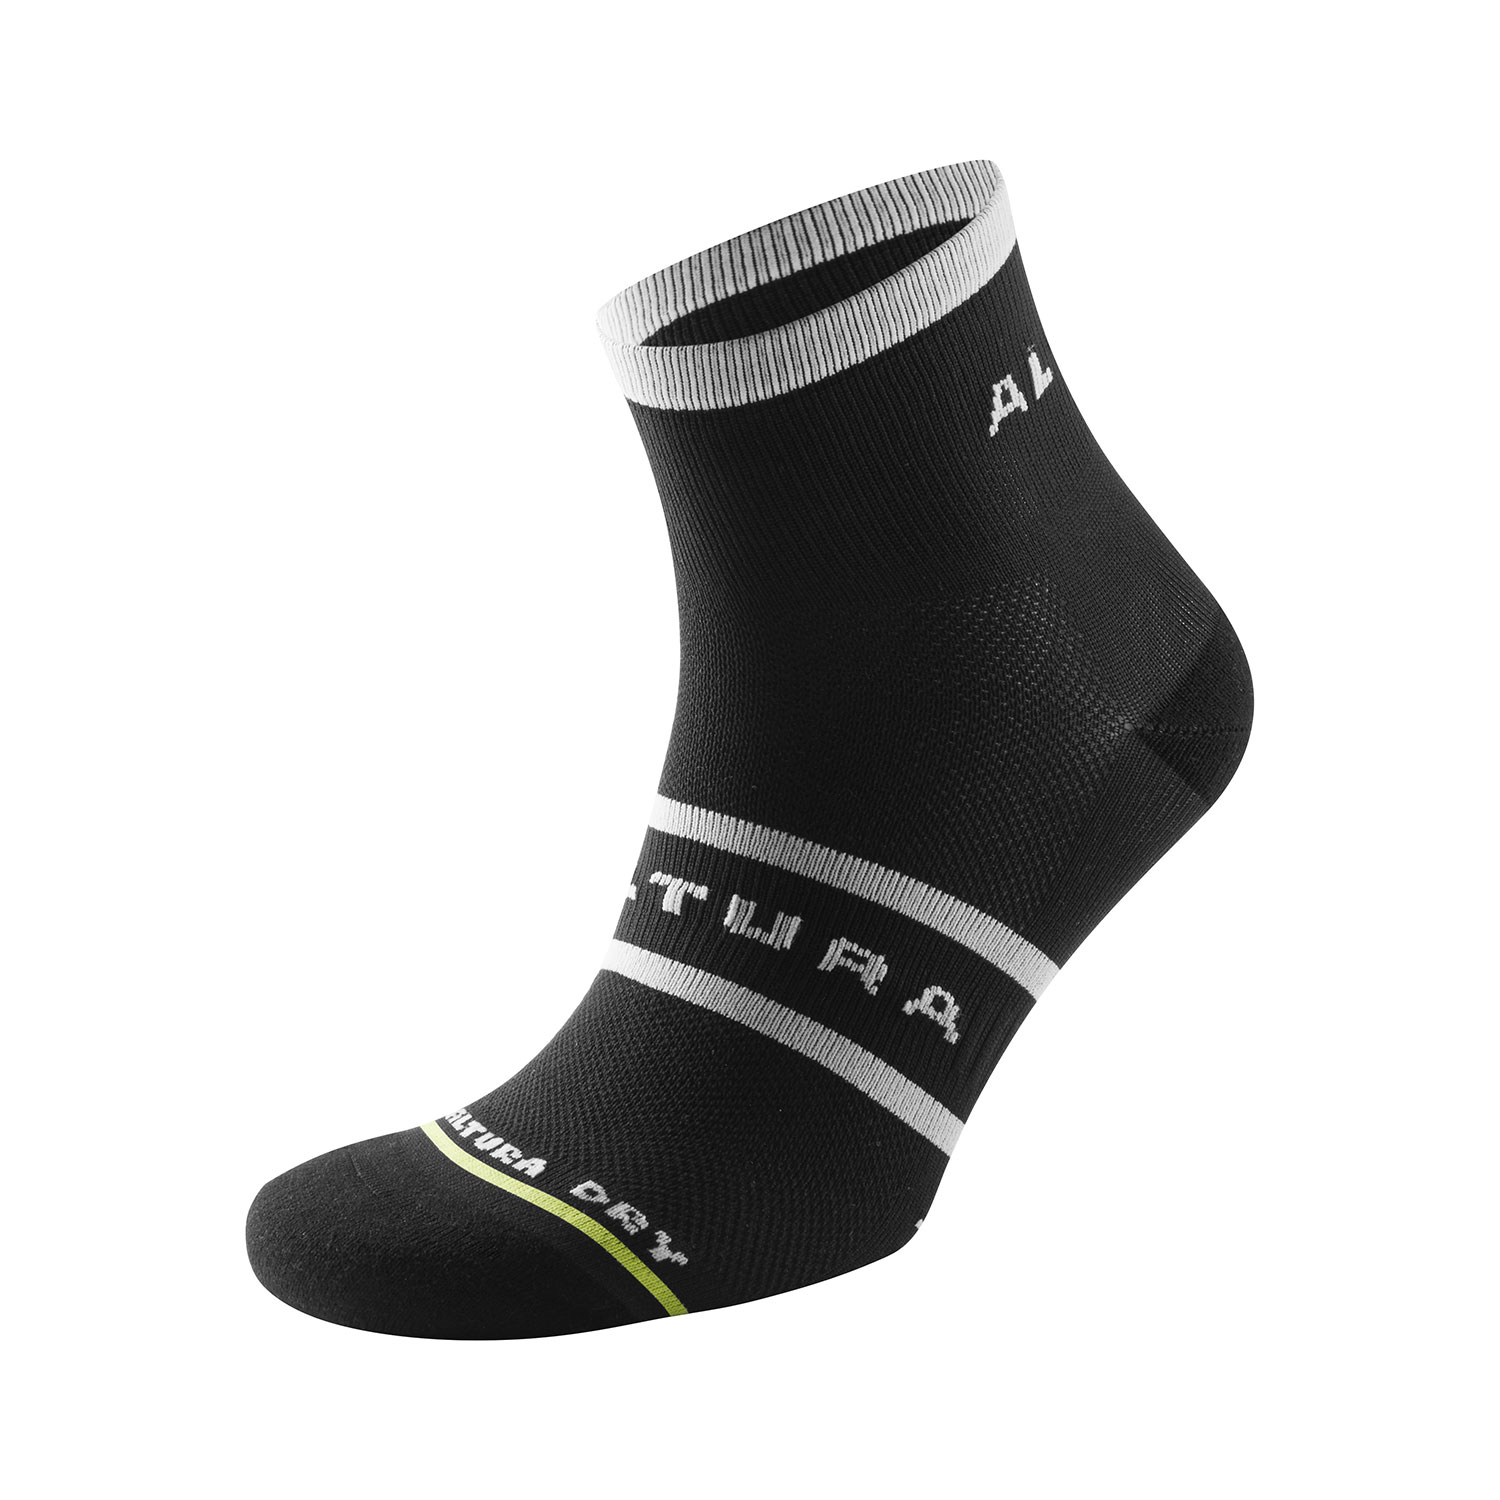 Altura Dry Sock 3 Pack : Black